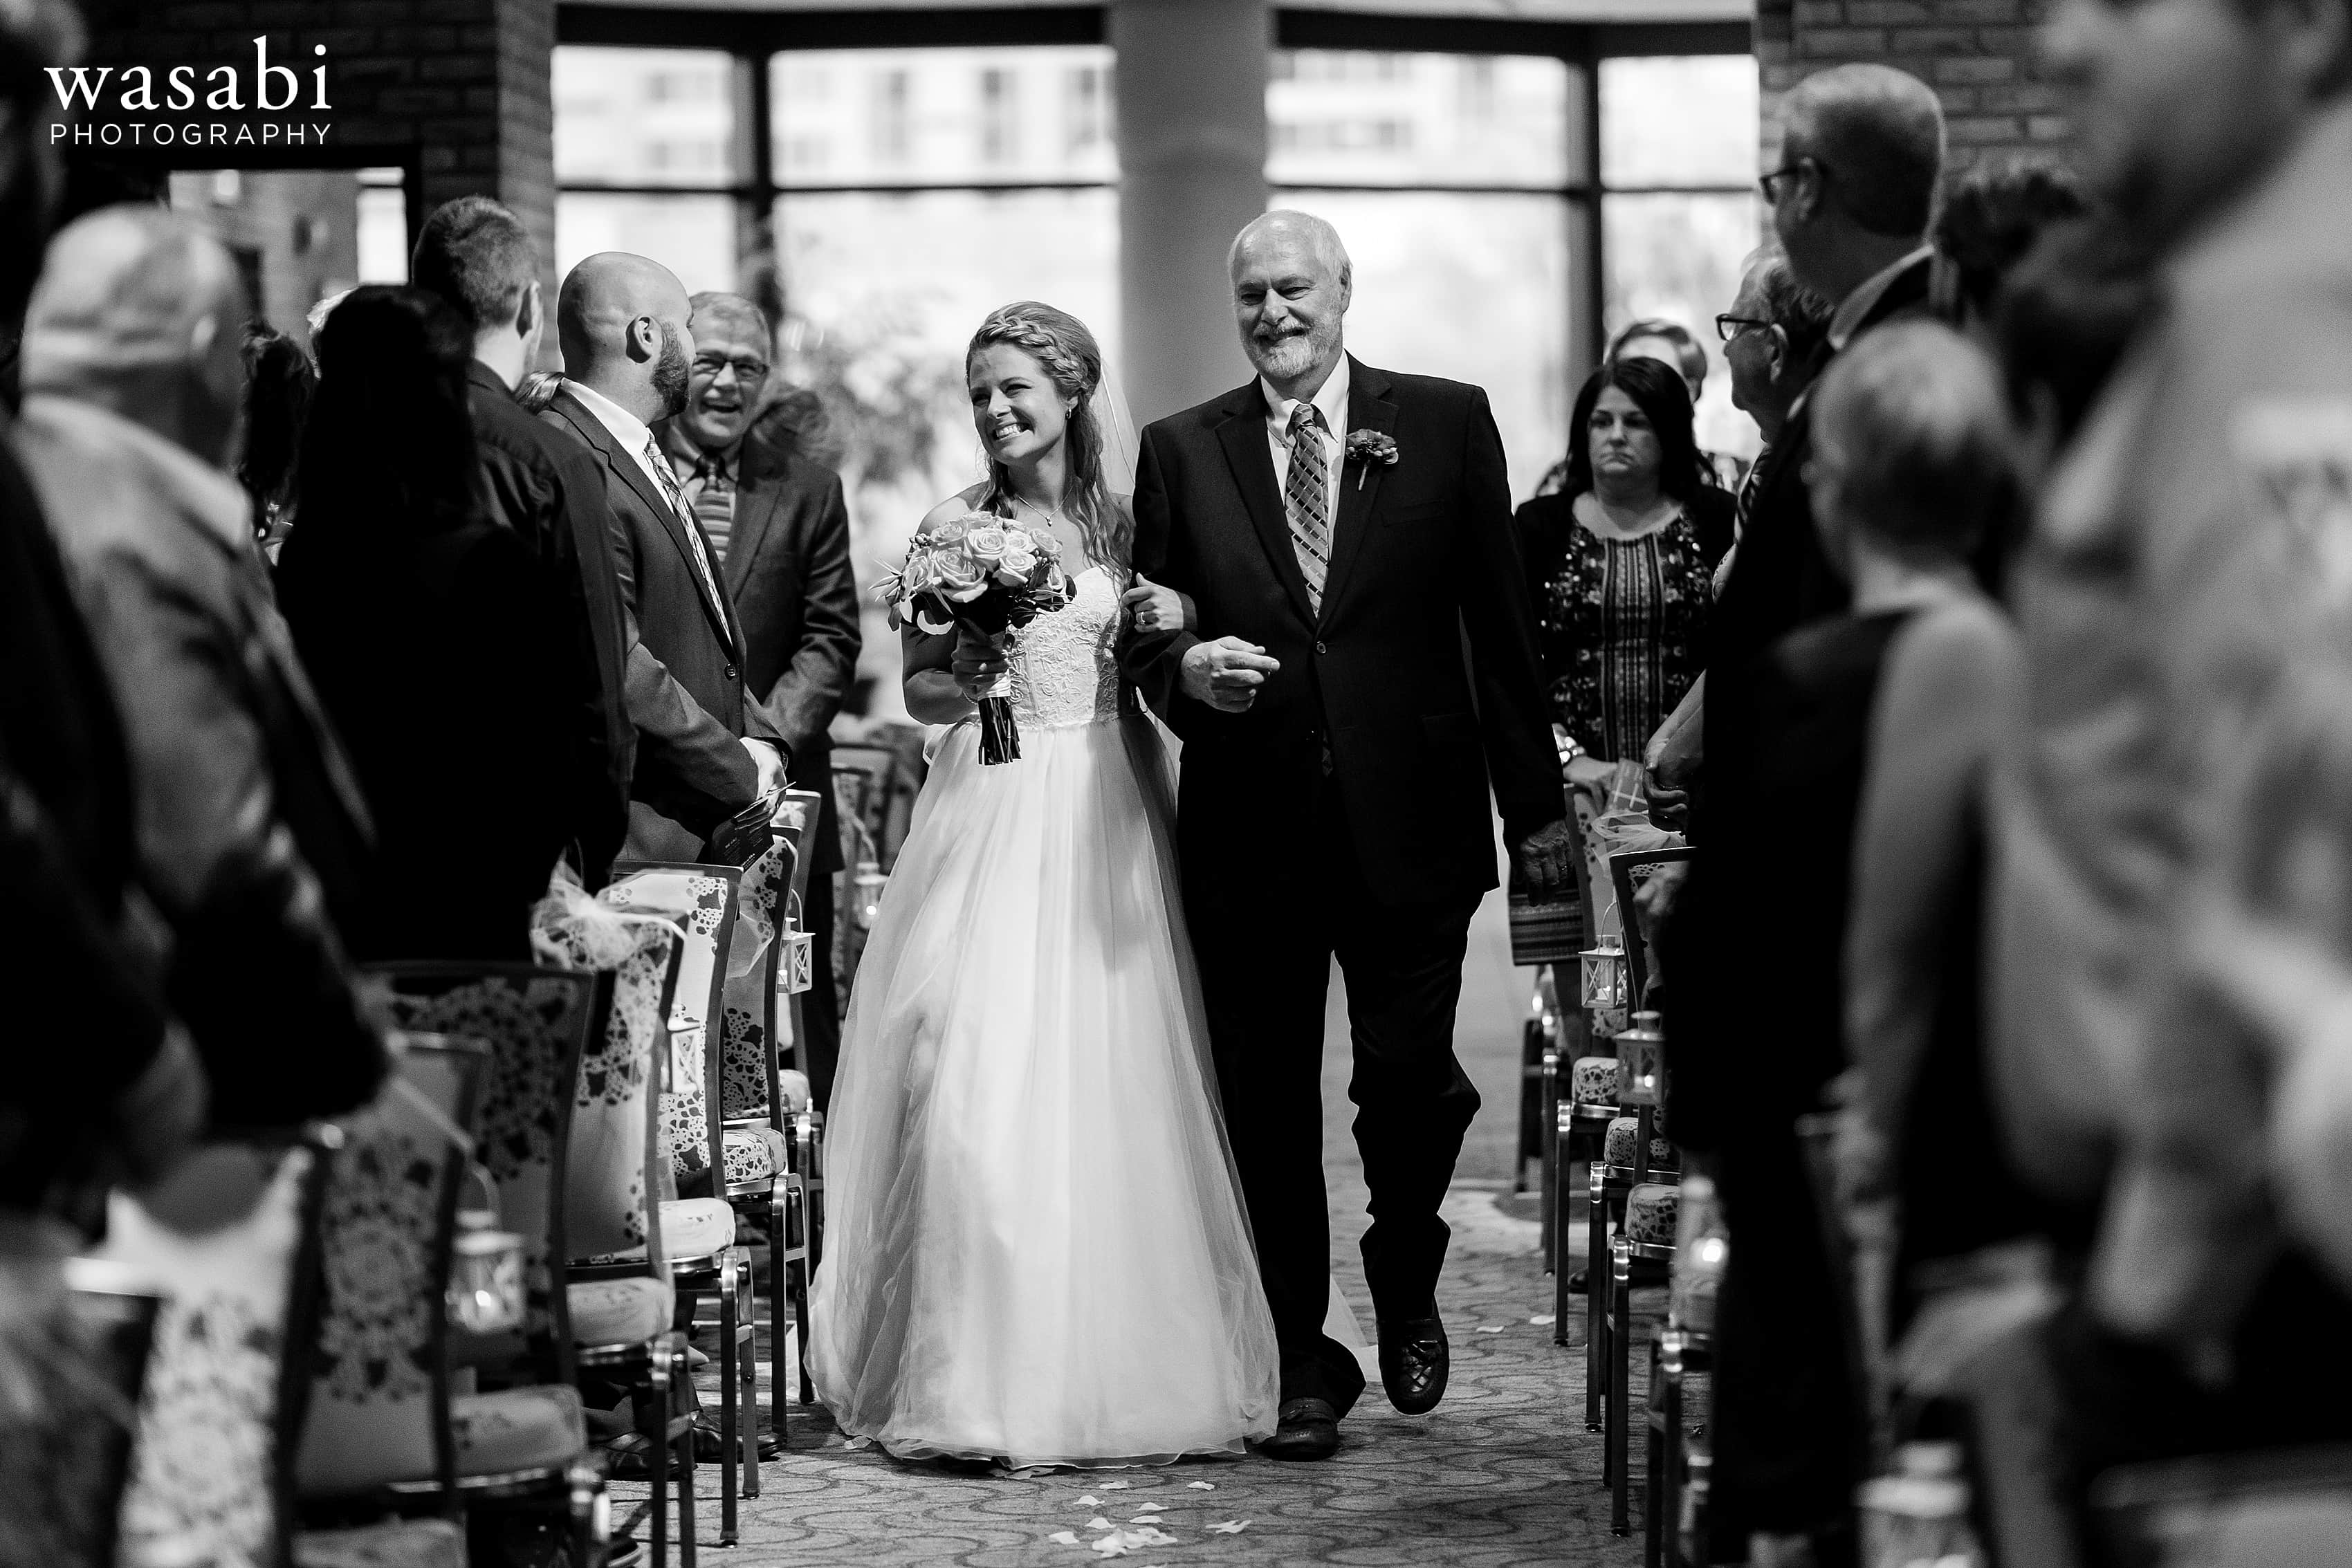 Bride and her father walk down the aisle during their wedding at Eberhard Center in downtown Grand Rapids